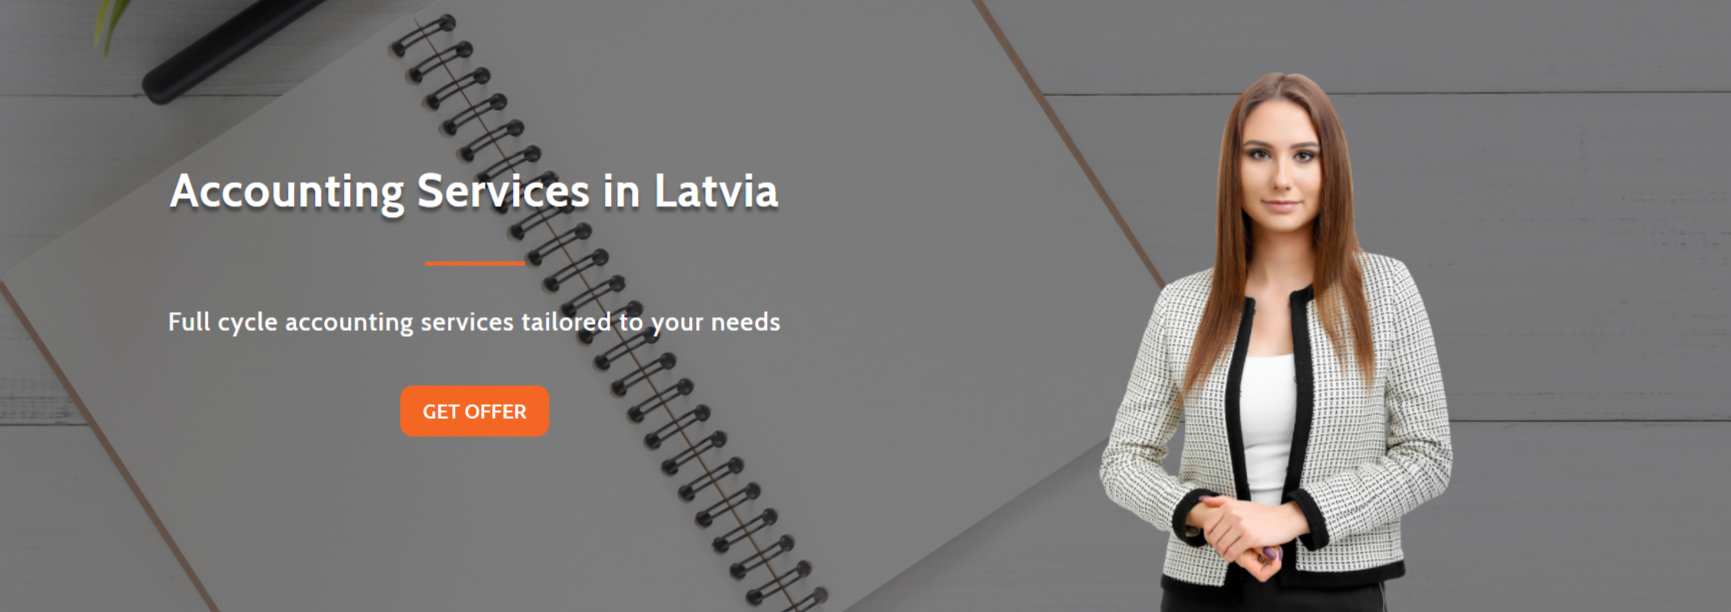 accounting services in latvia